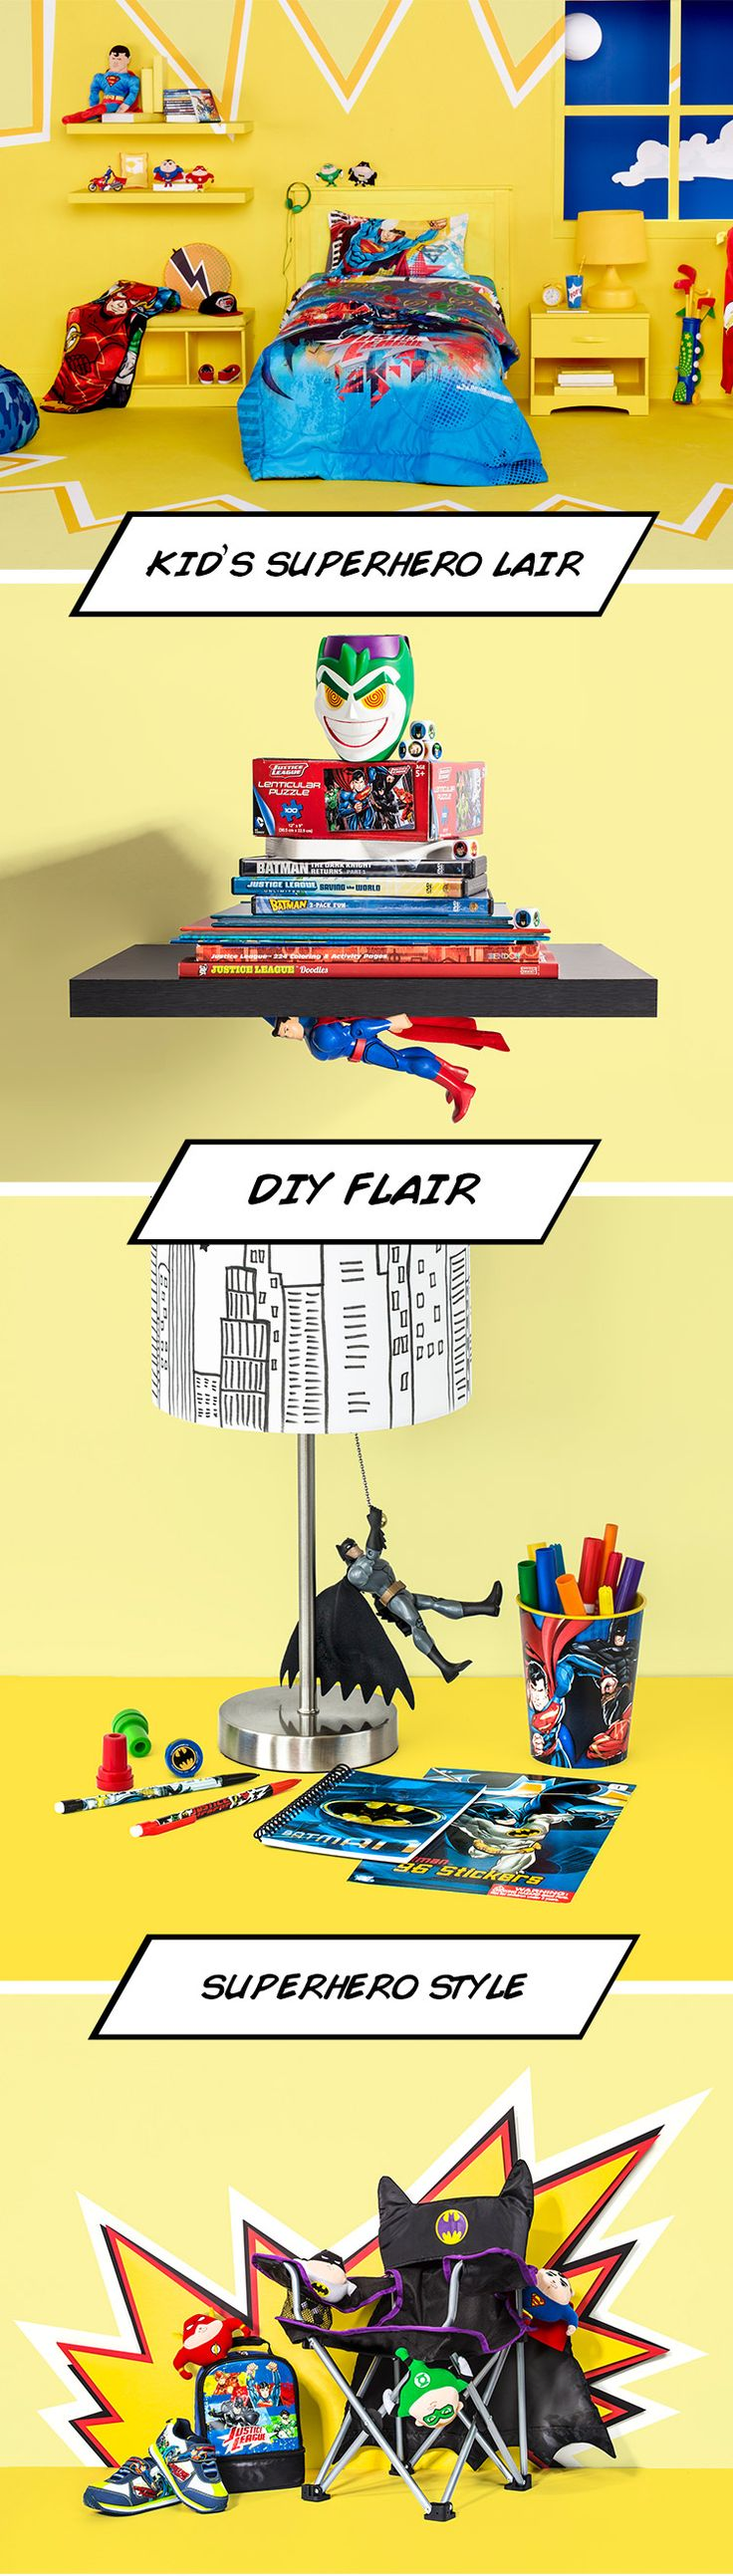 How to create your kid's very own super hero bedroom lair, where justice and good times rule!